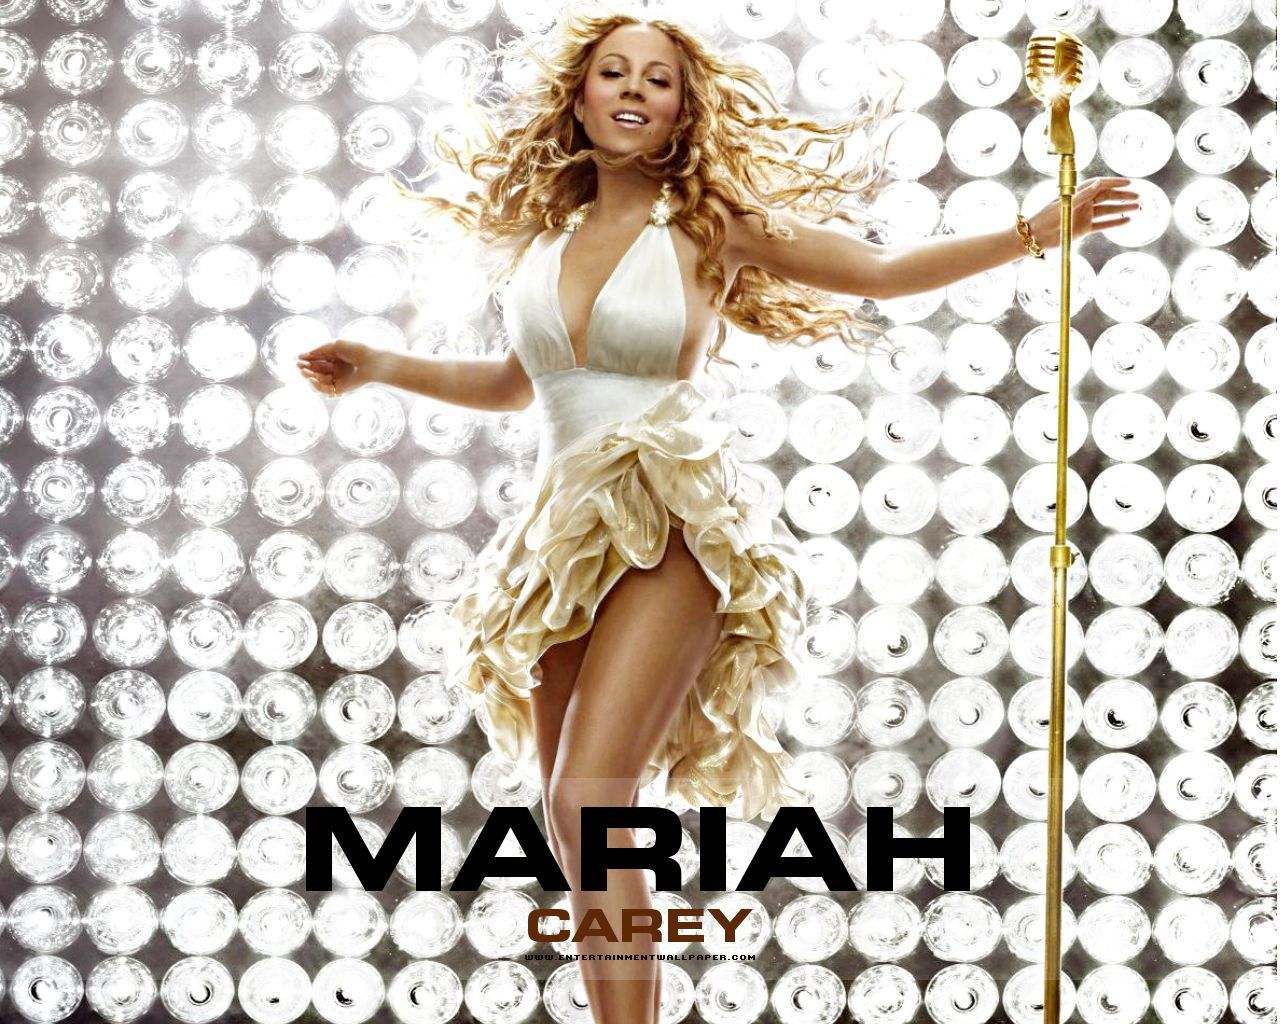 Mariah Carey Wallpaper Mariah Carey Mariah Carey Pictures Mariah